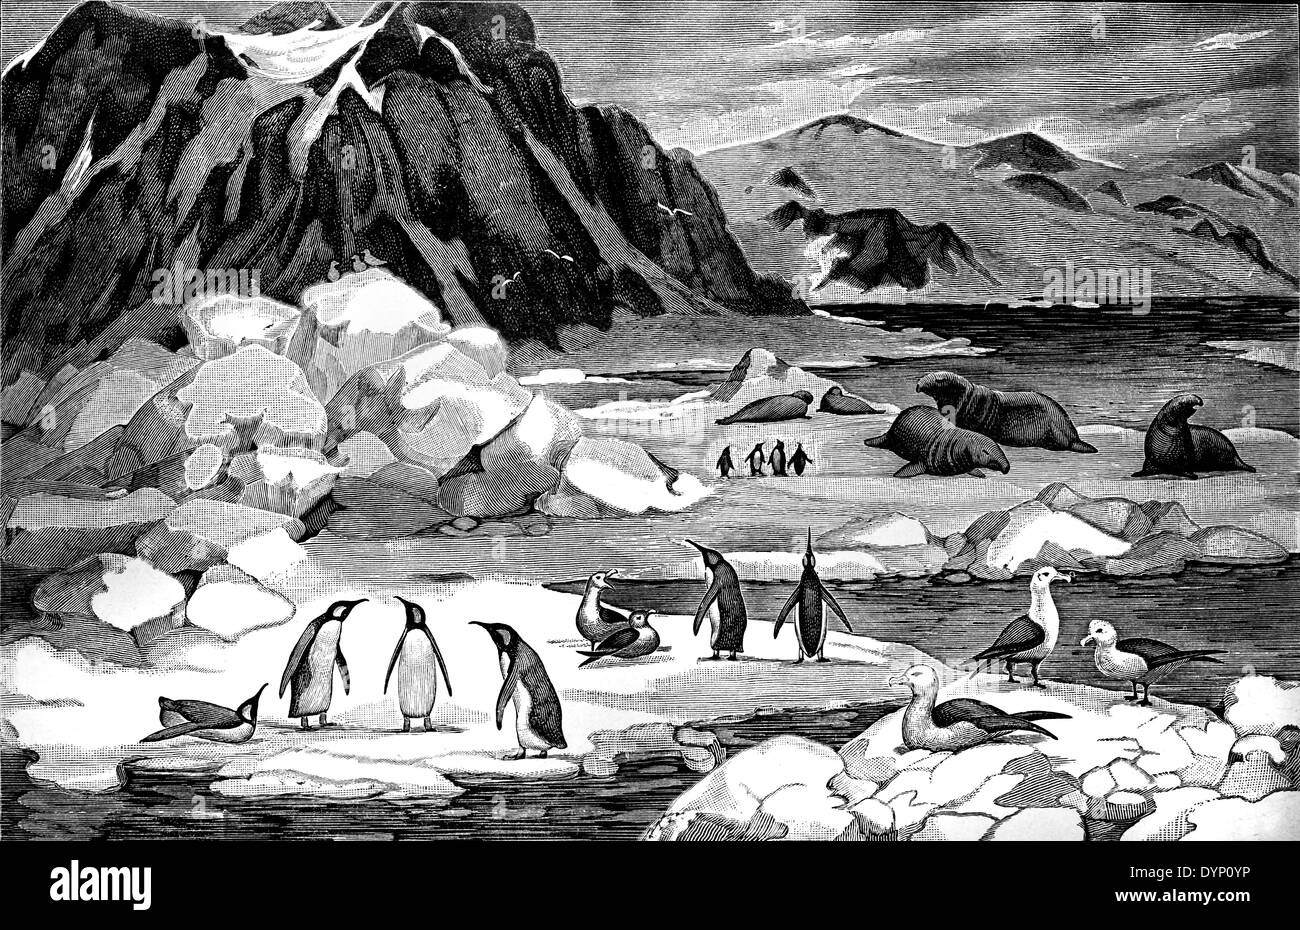 Typical animals of Antarctic area, illustration from Soviet encyclopedia, 1926 - Stock Image